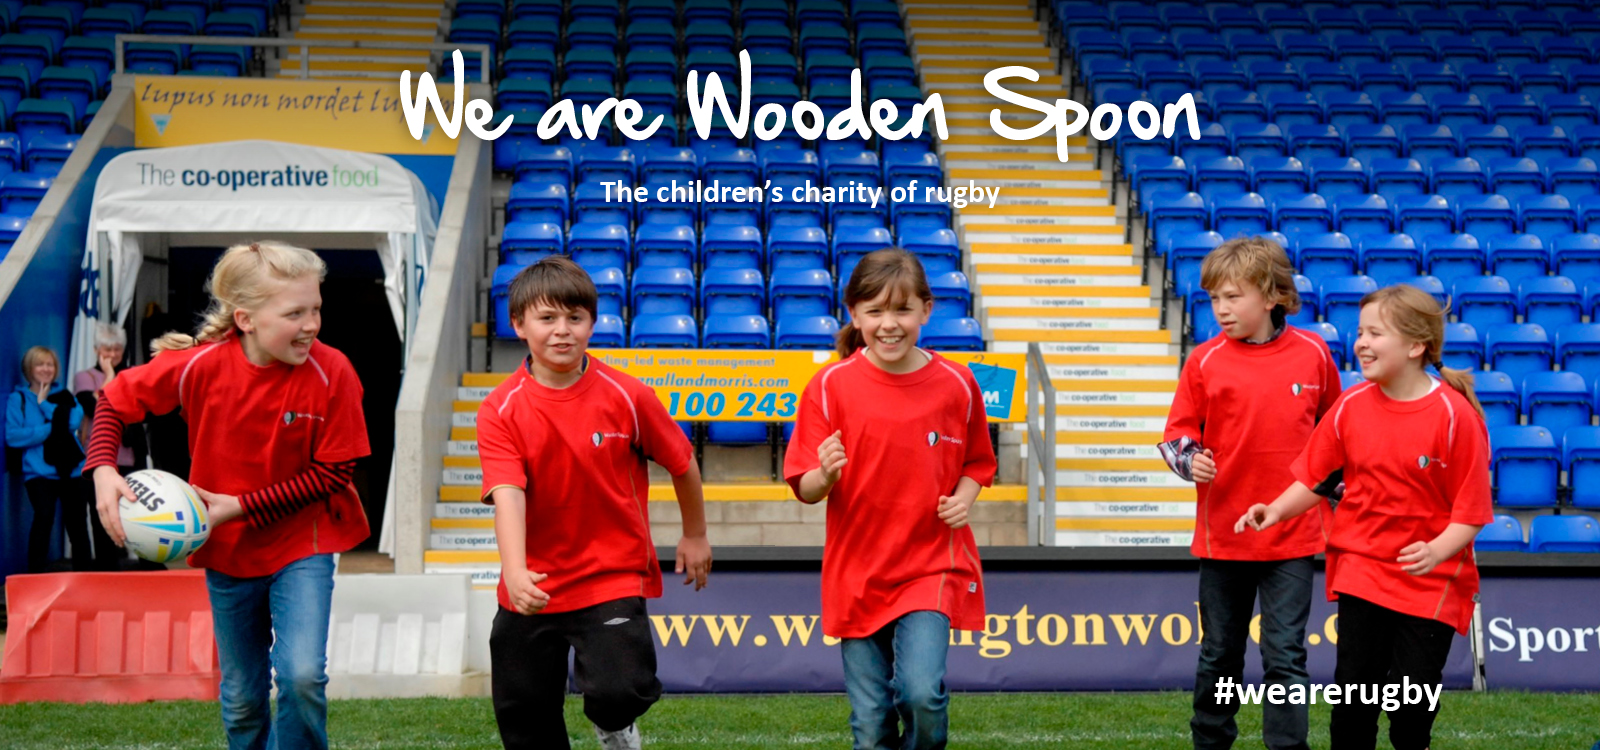 Find Out More About The Childrens Charity Of Rugby Wooden Spoon